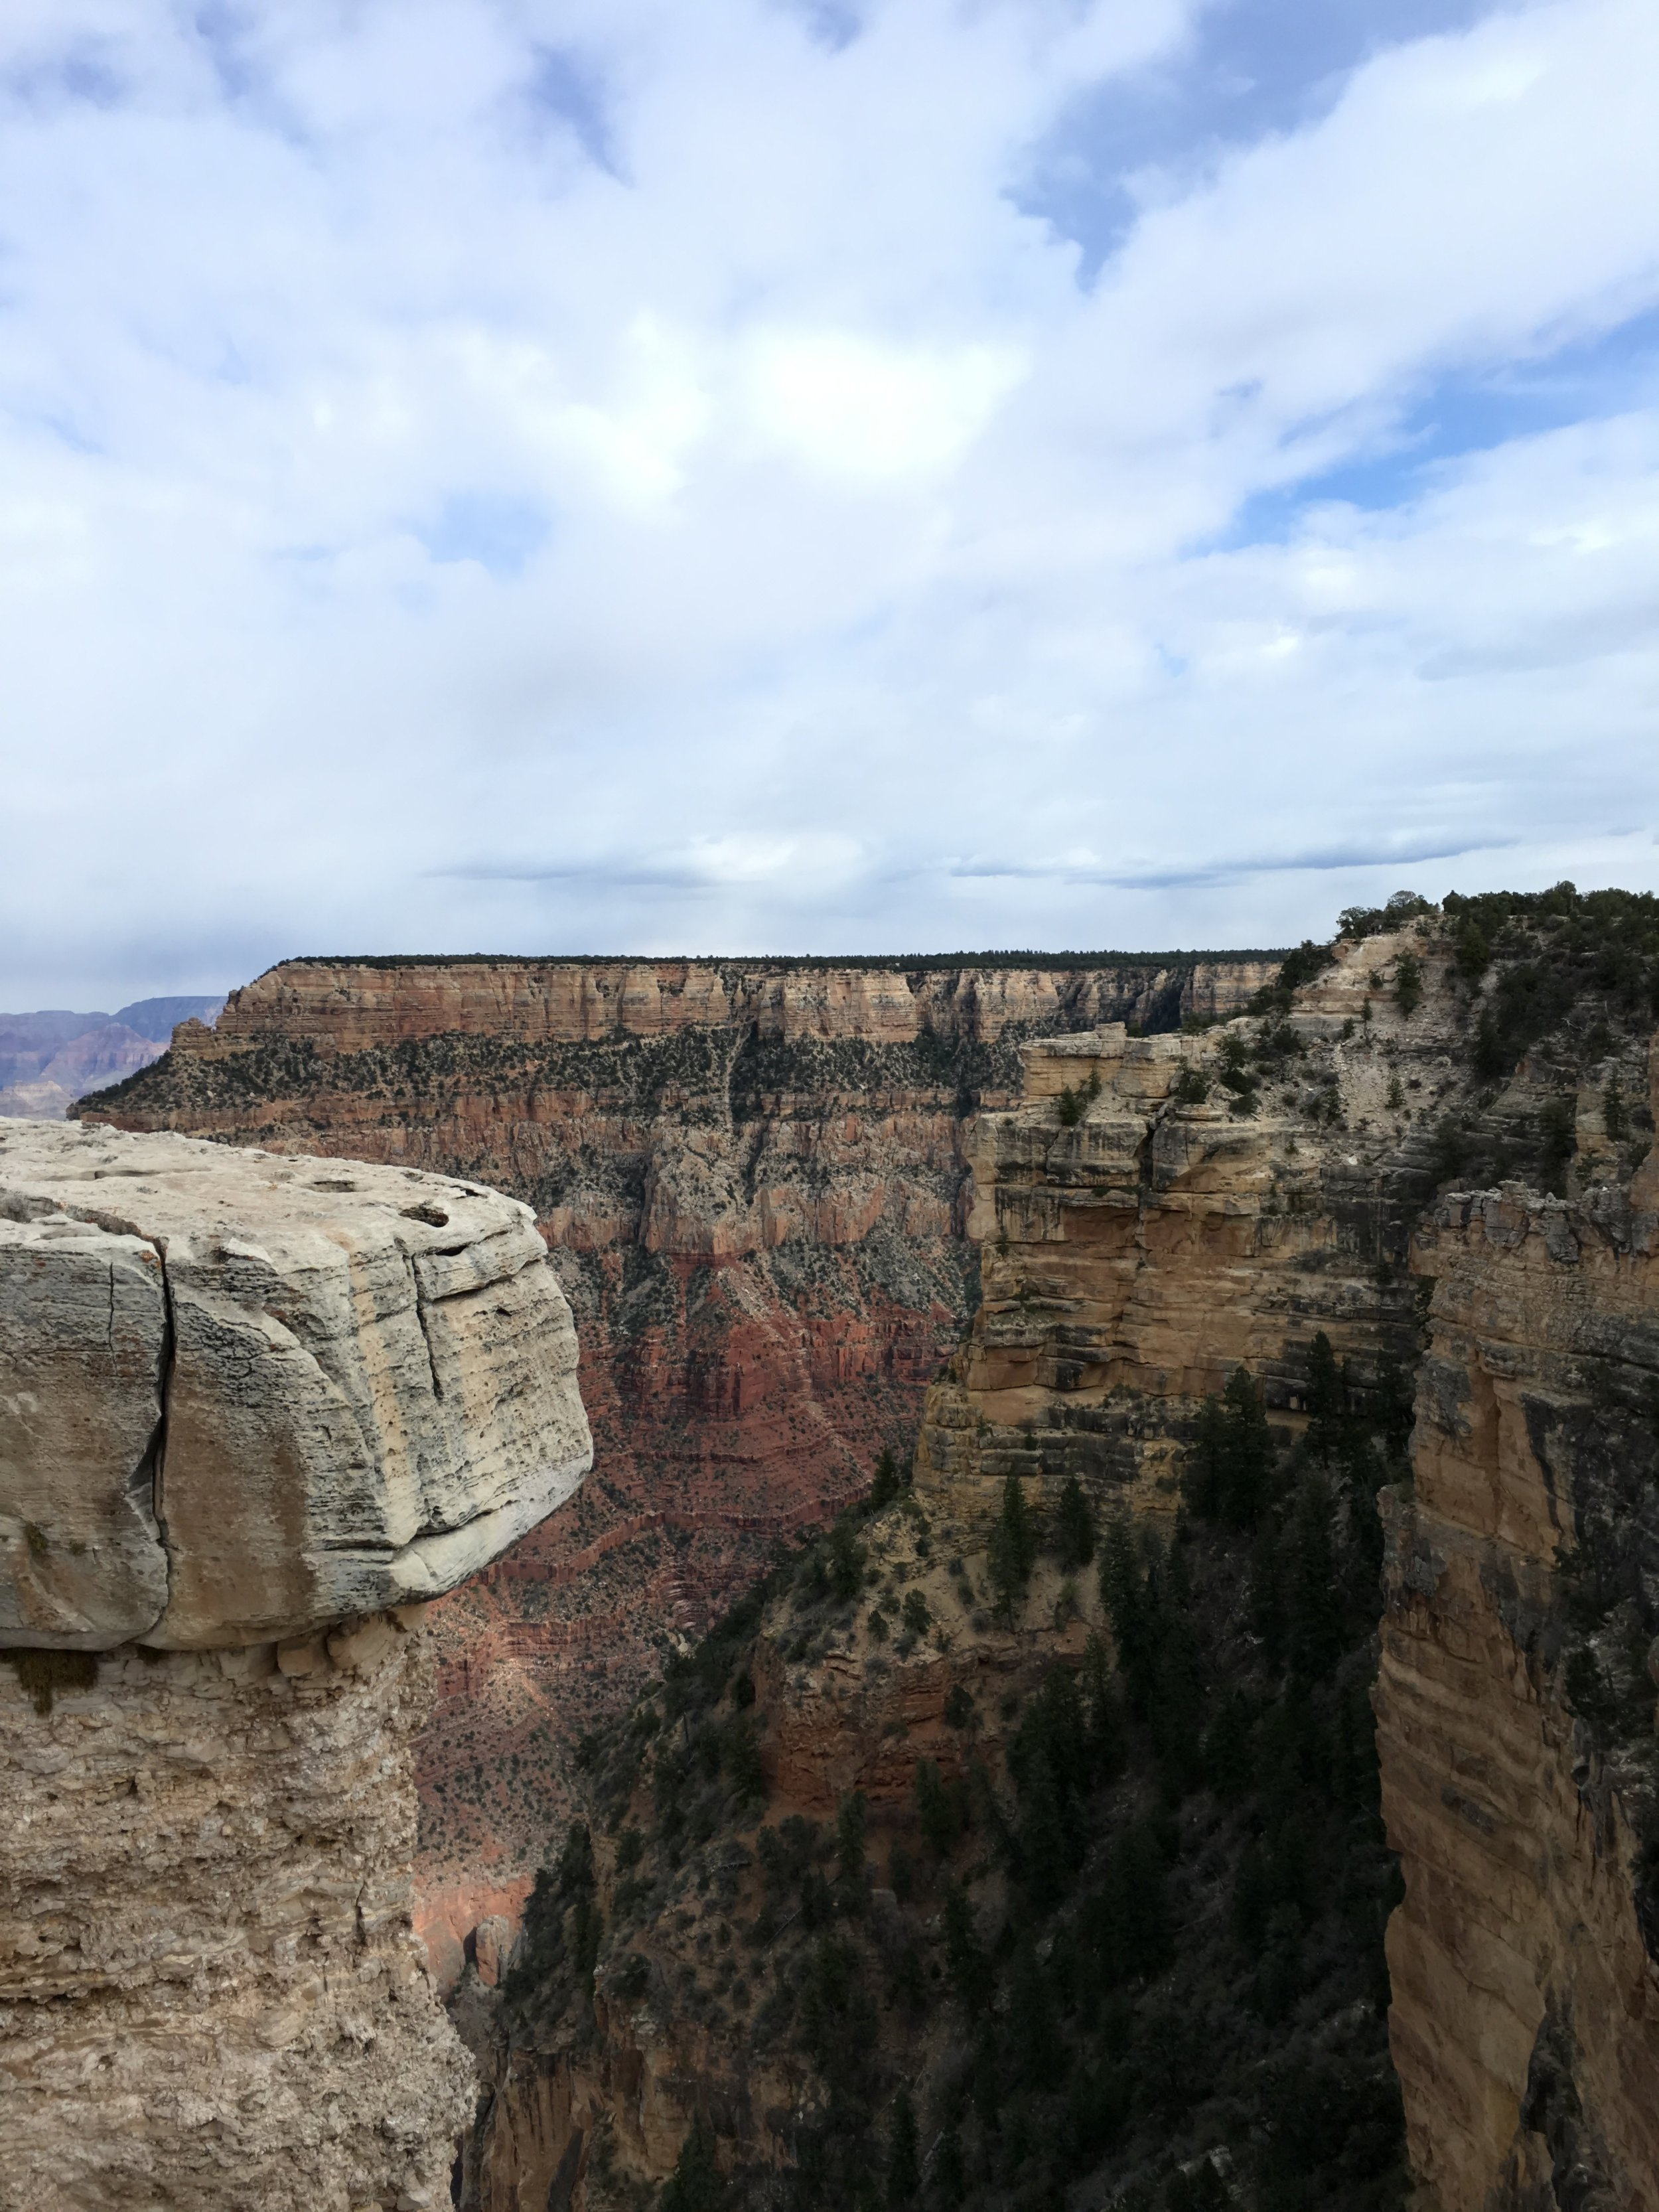 My first time seeing the Grand Canyon!